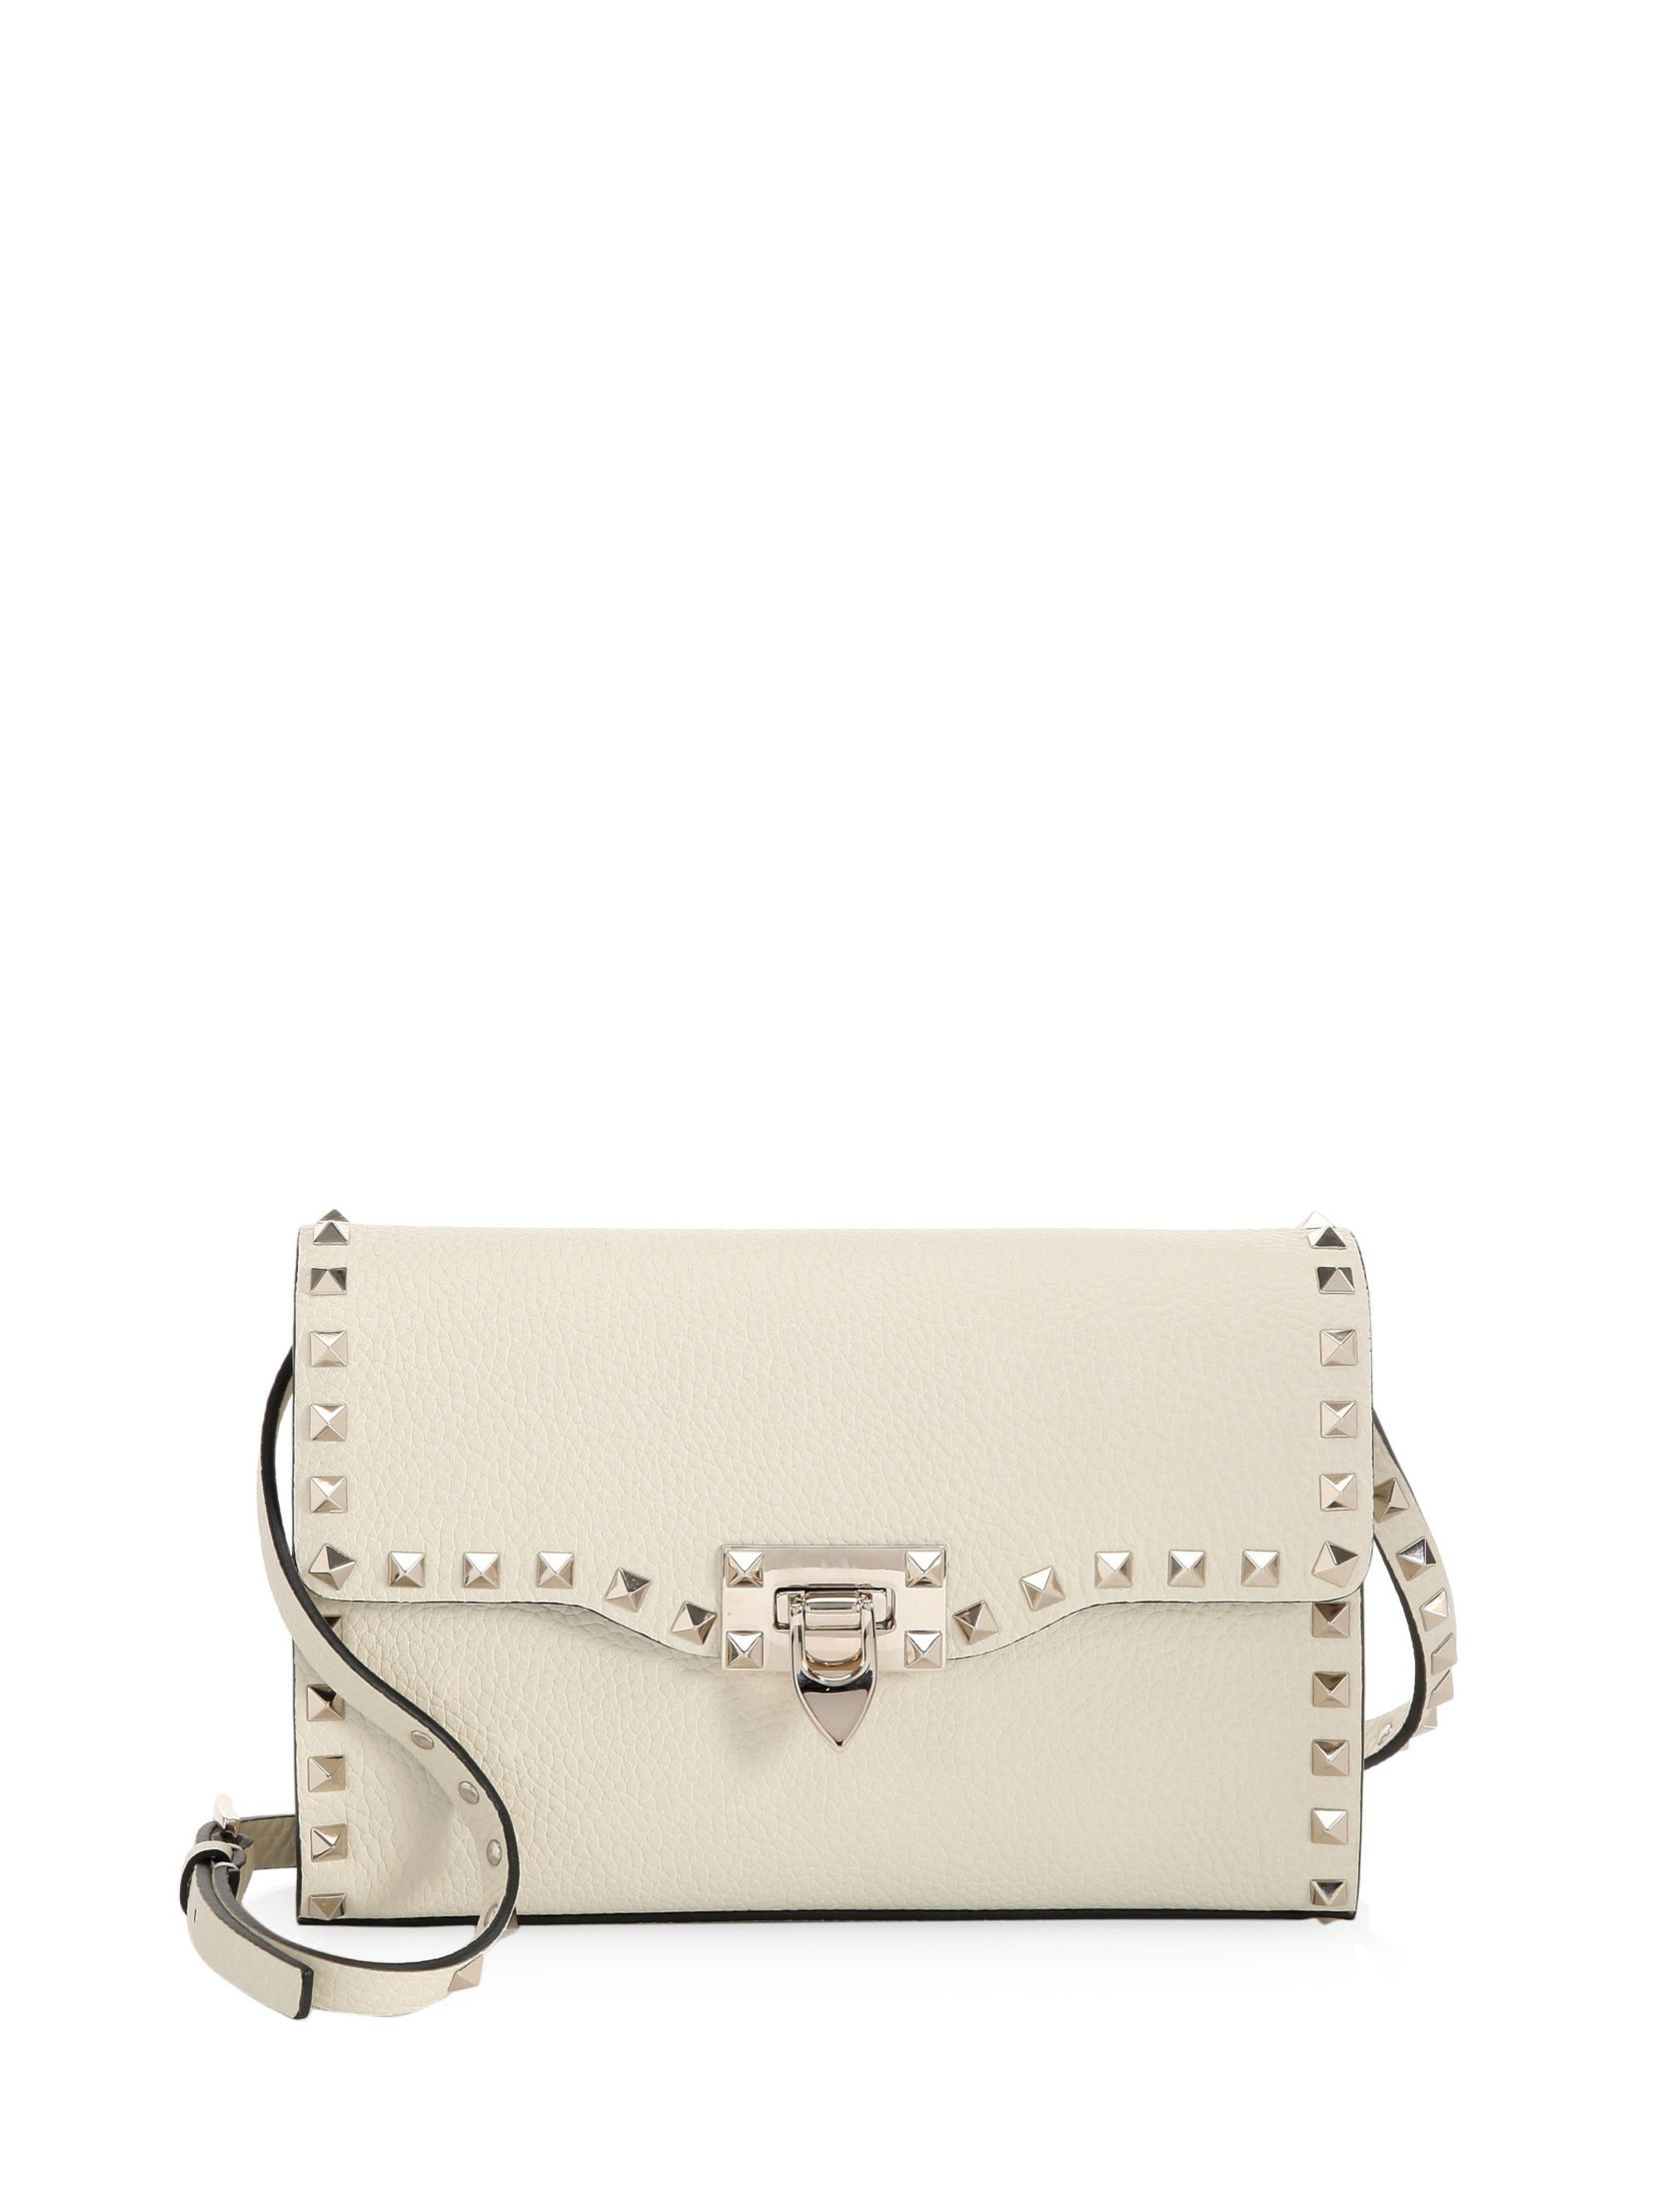 Embroidered Spike.It Small Shoulder Bag in Ivory Studded Calf Valentino